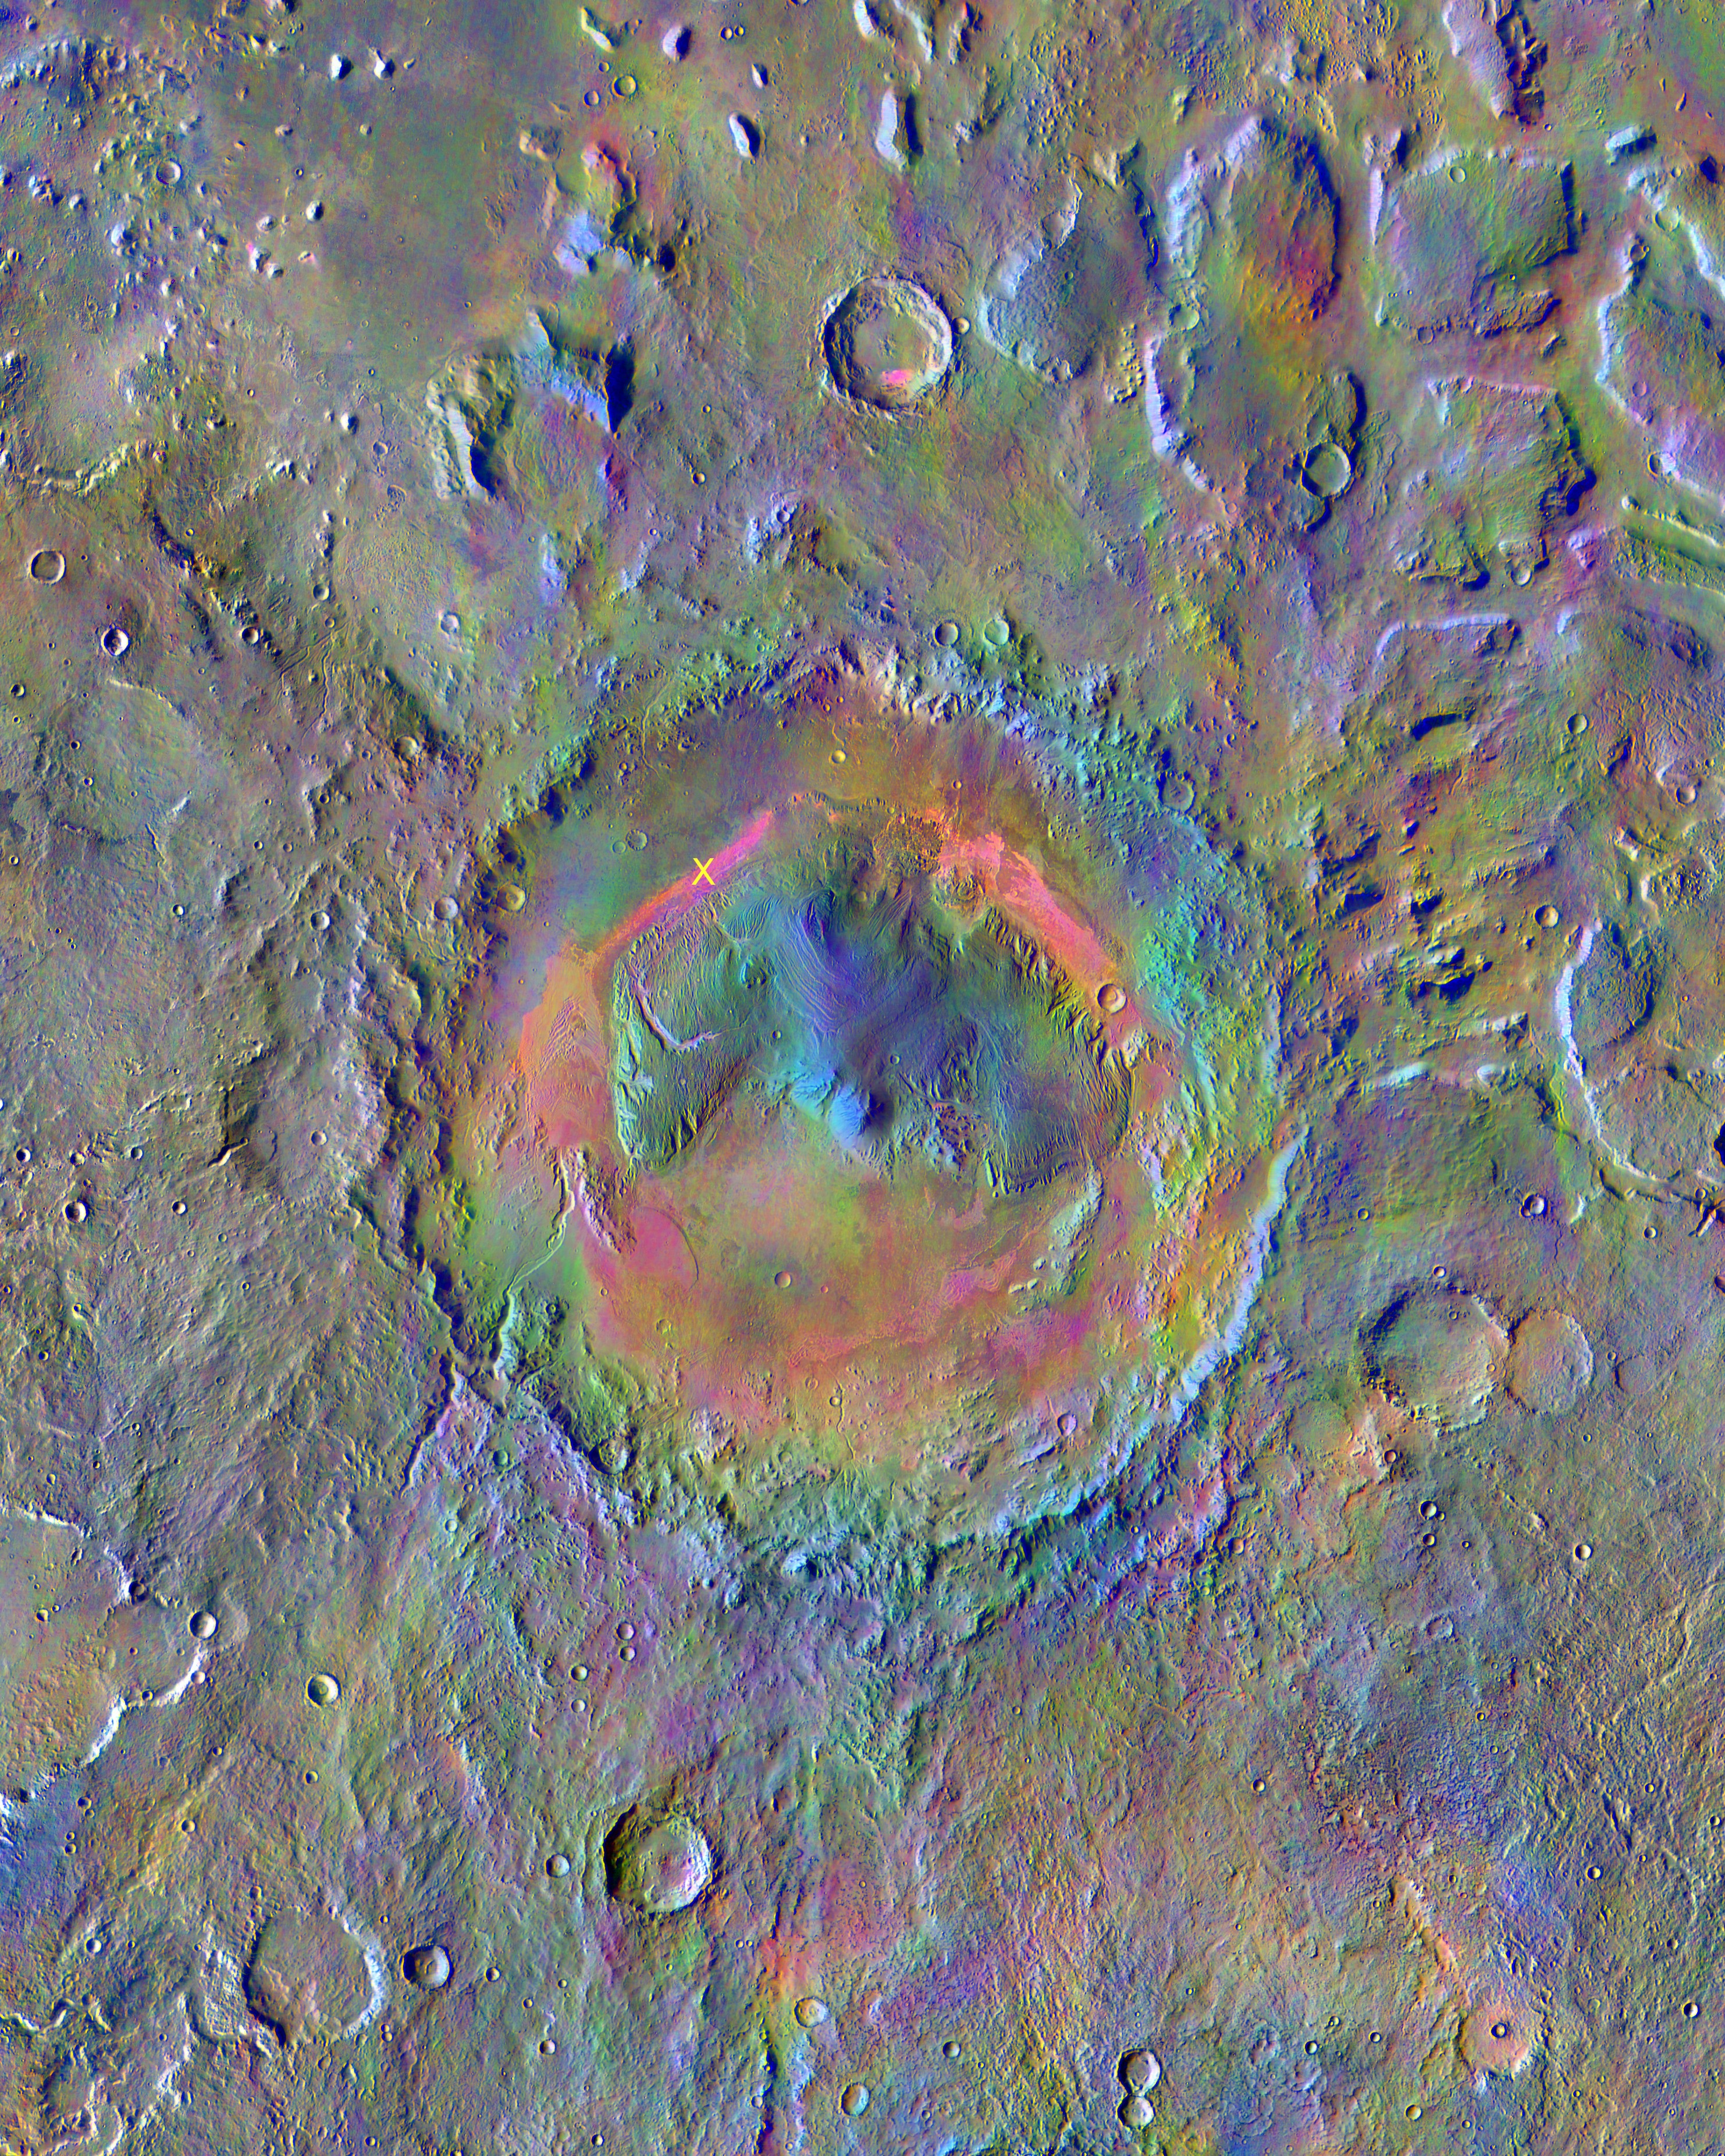 mars-odyssey-themis-gale-crater-minerals-pia196 74-full rens